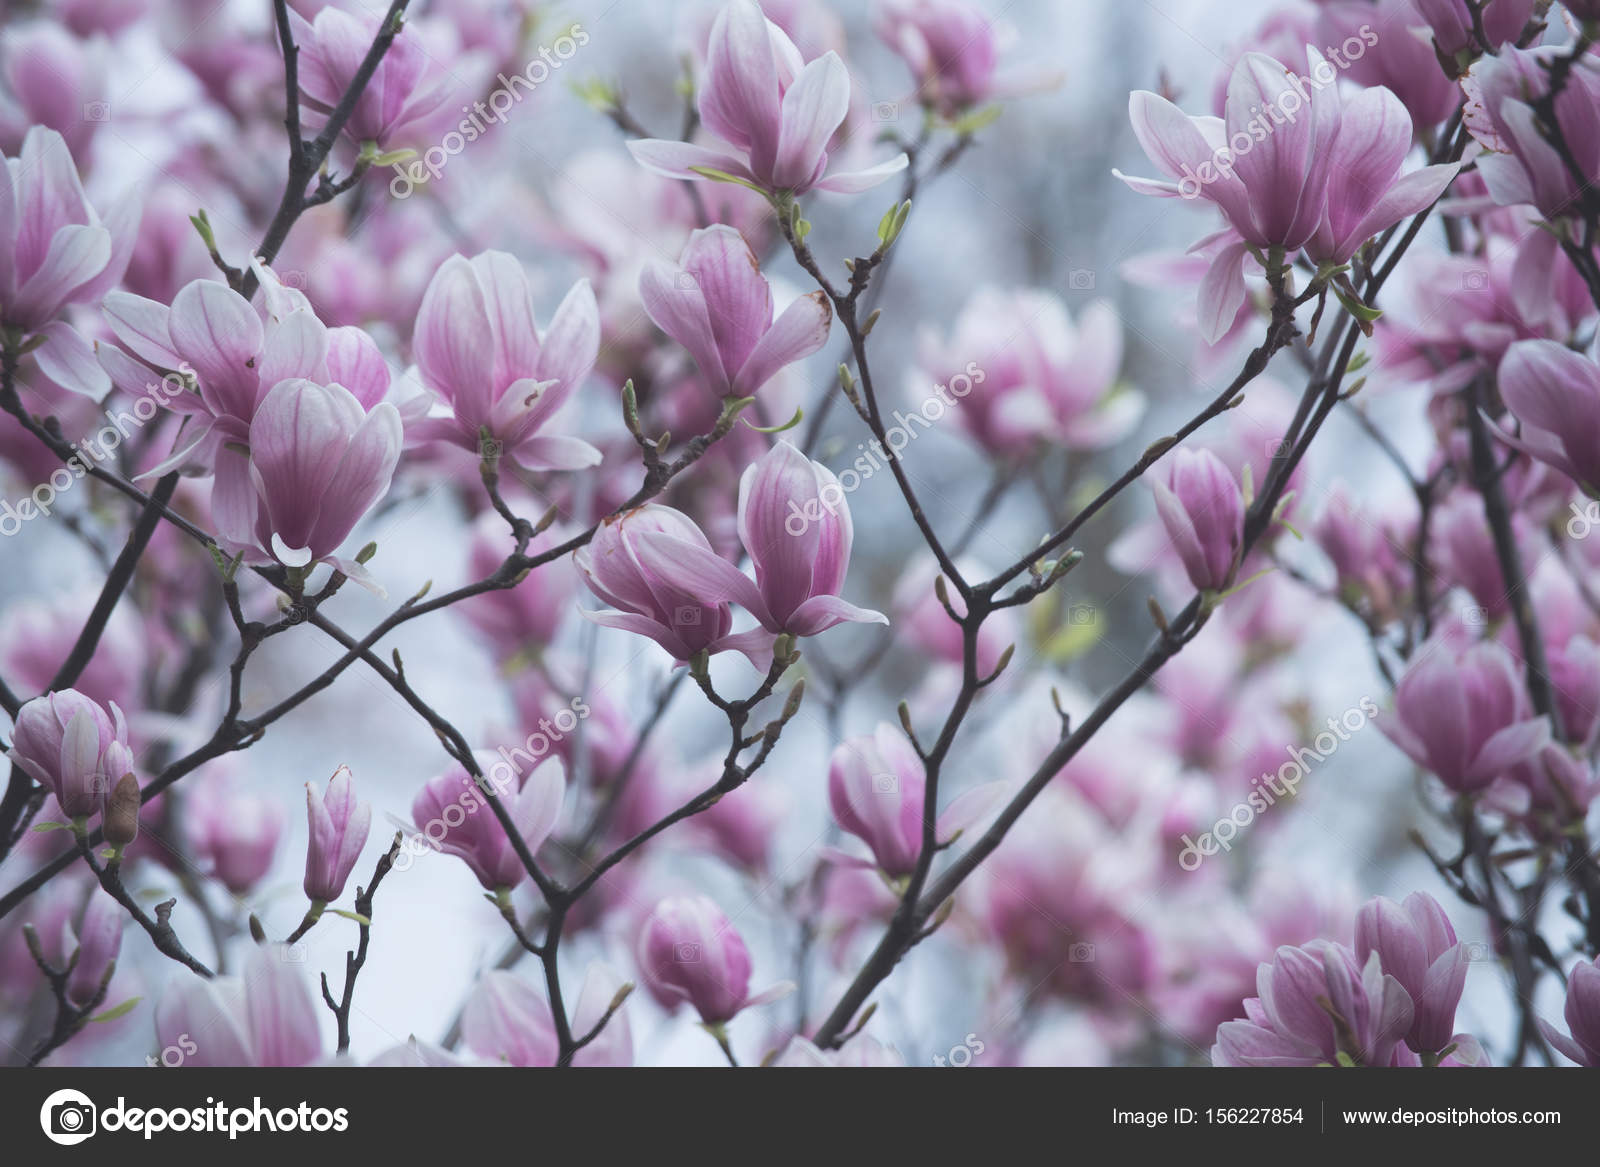 Magnolia tree blossom with pink flowers on branch in garden stock magnolia tree blossom with pink flowers on branch in garden stock photo mightylinksfo